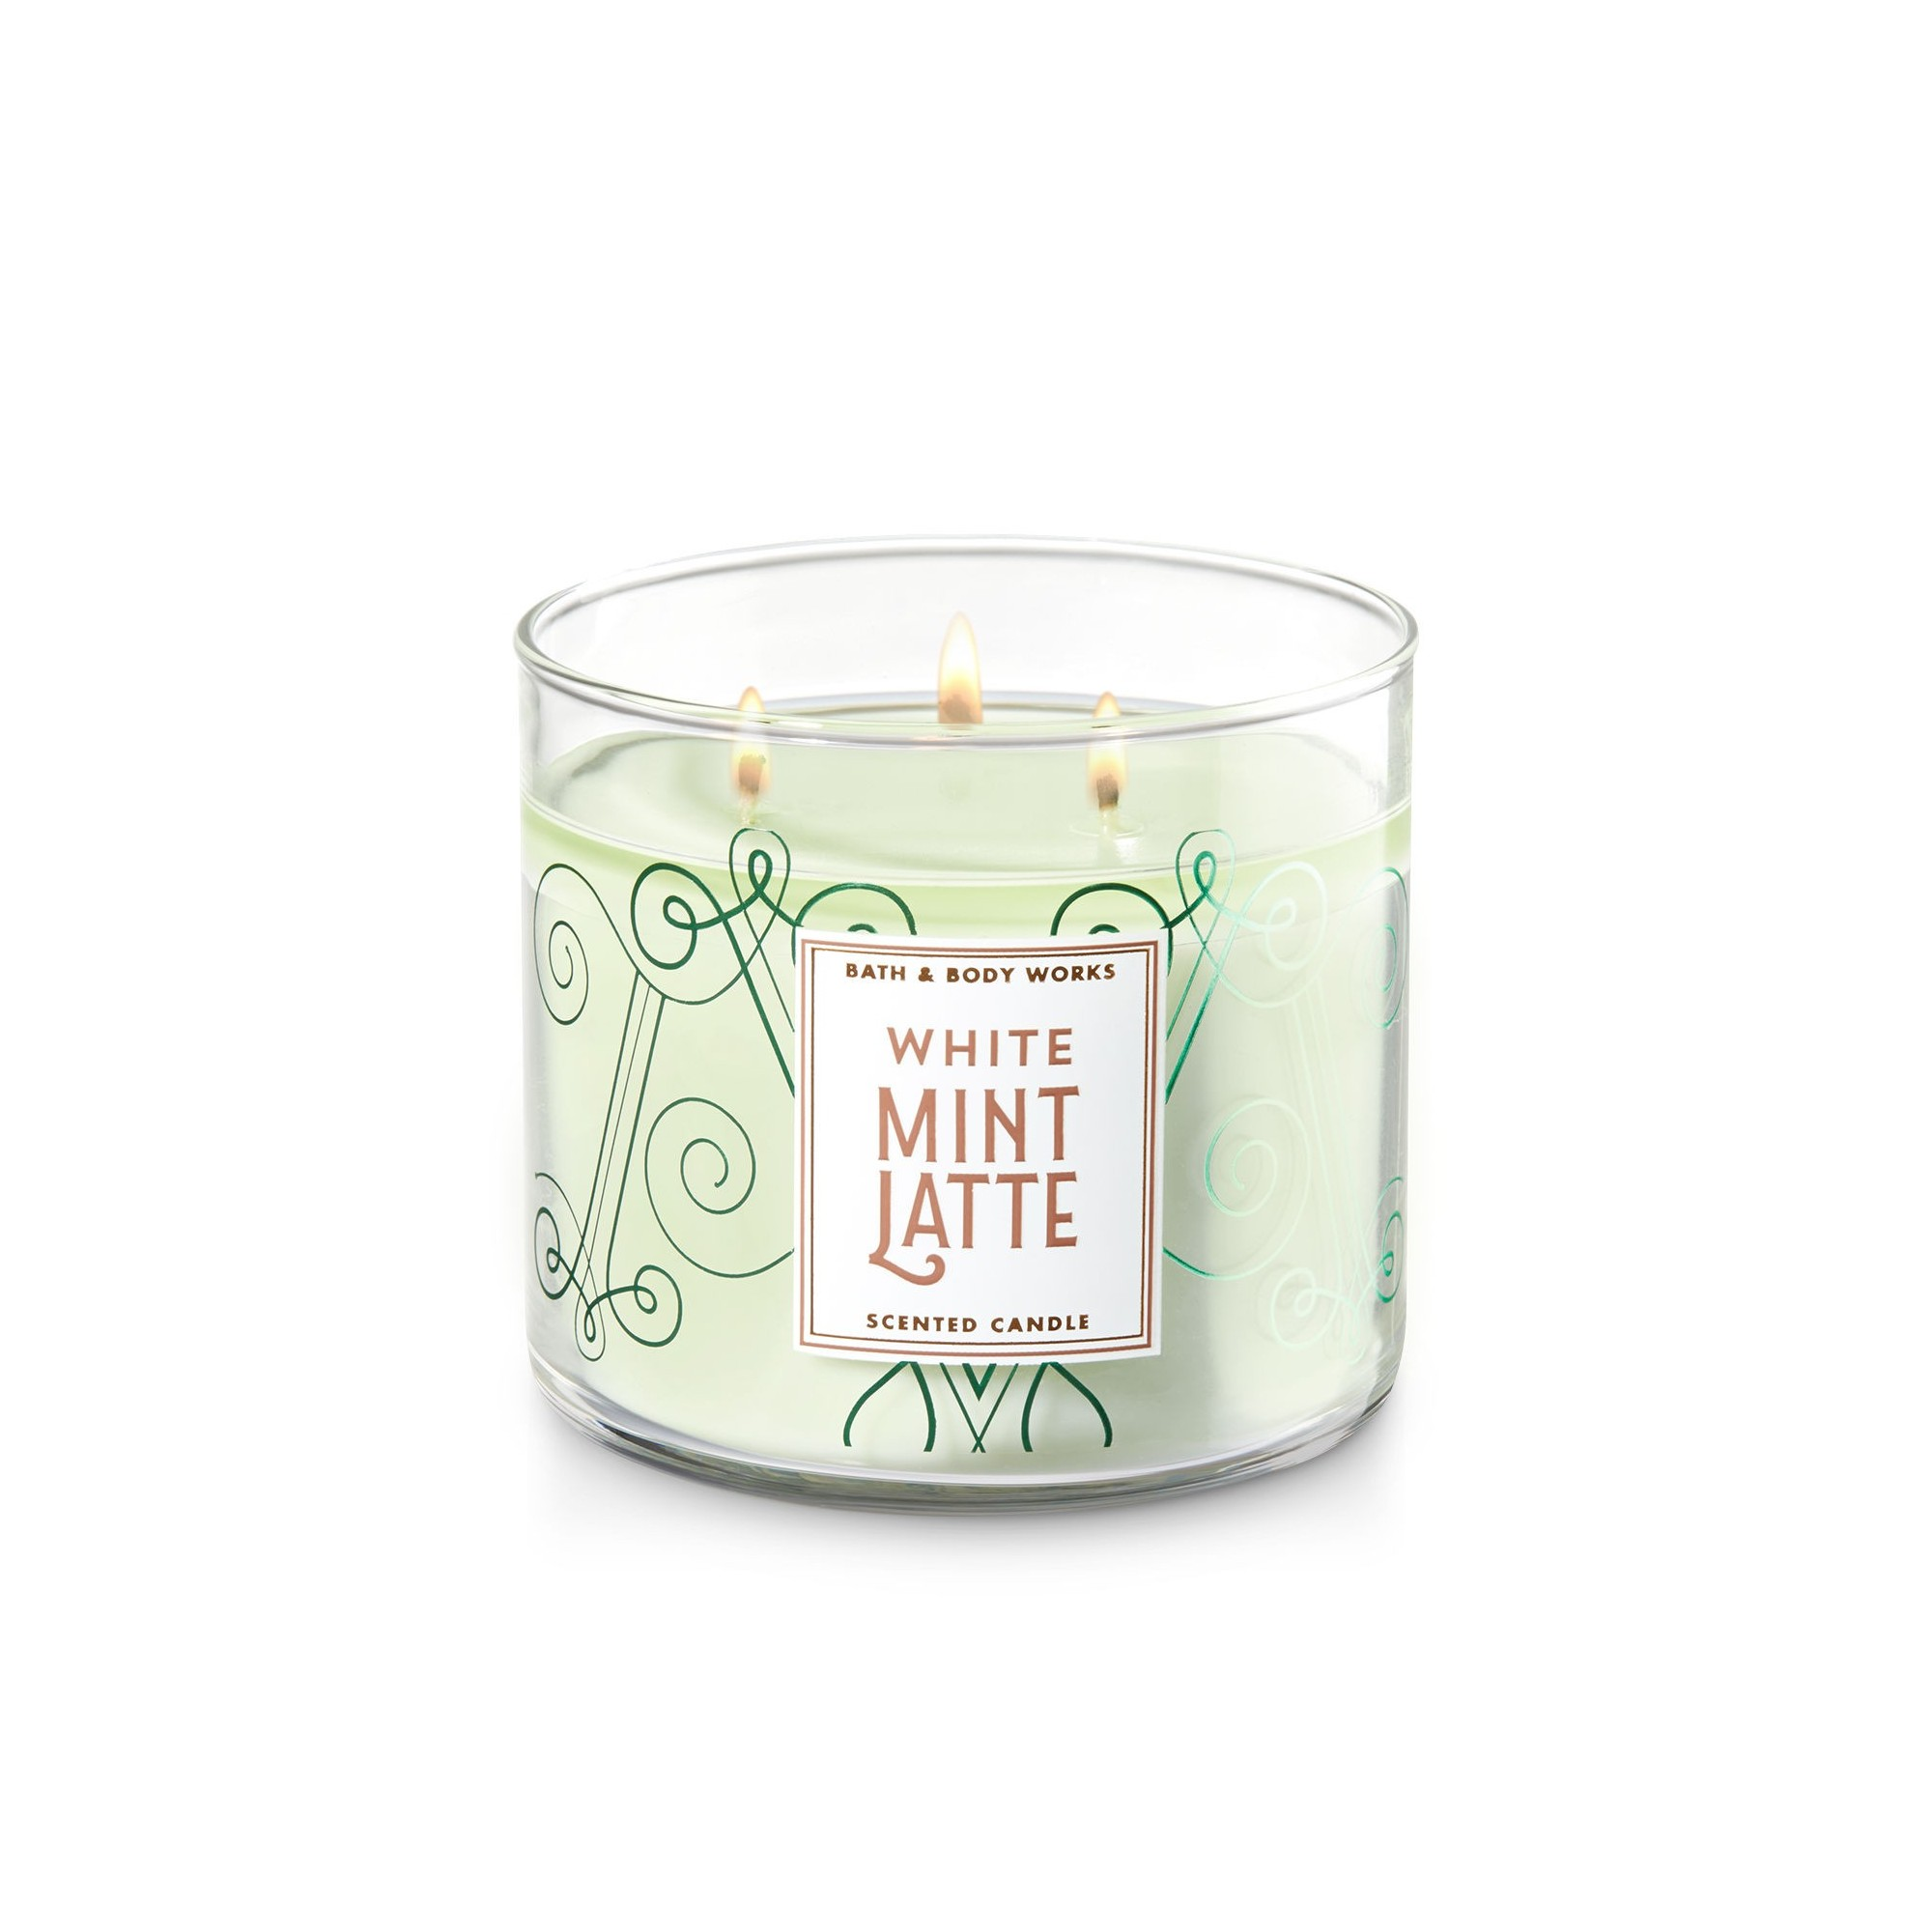 Bath & Body Works White Mint Latte 3 Wick Scented Candle